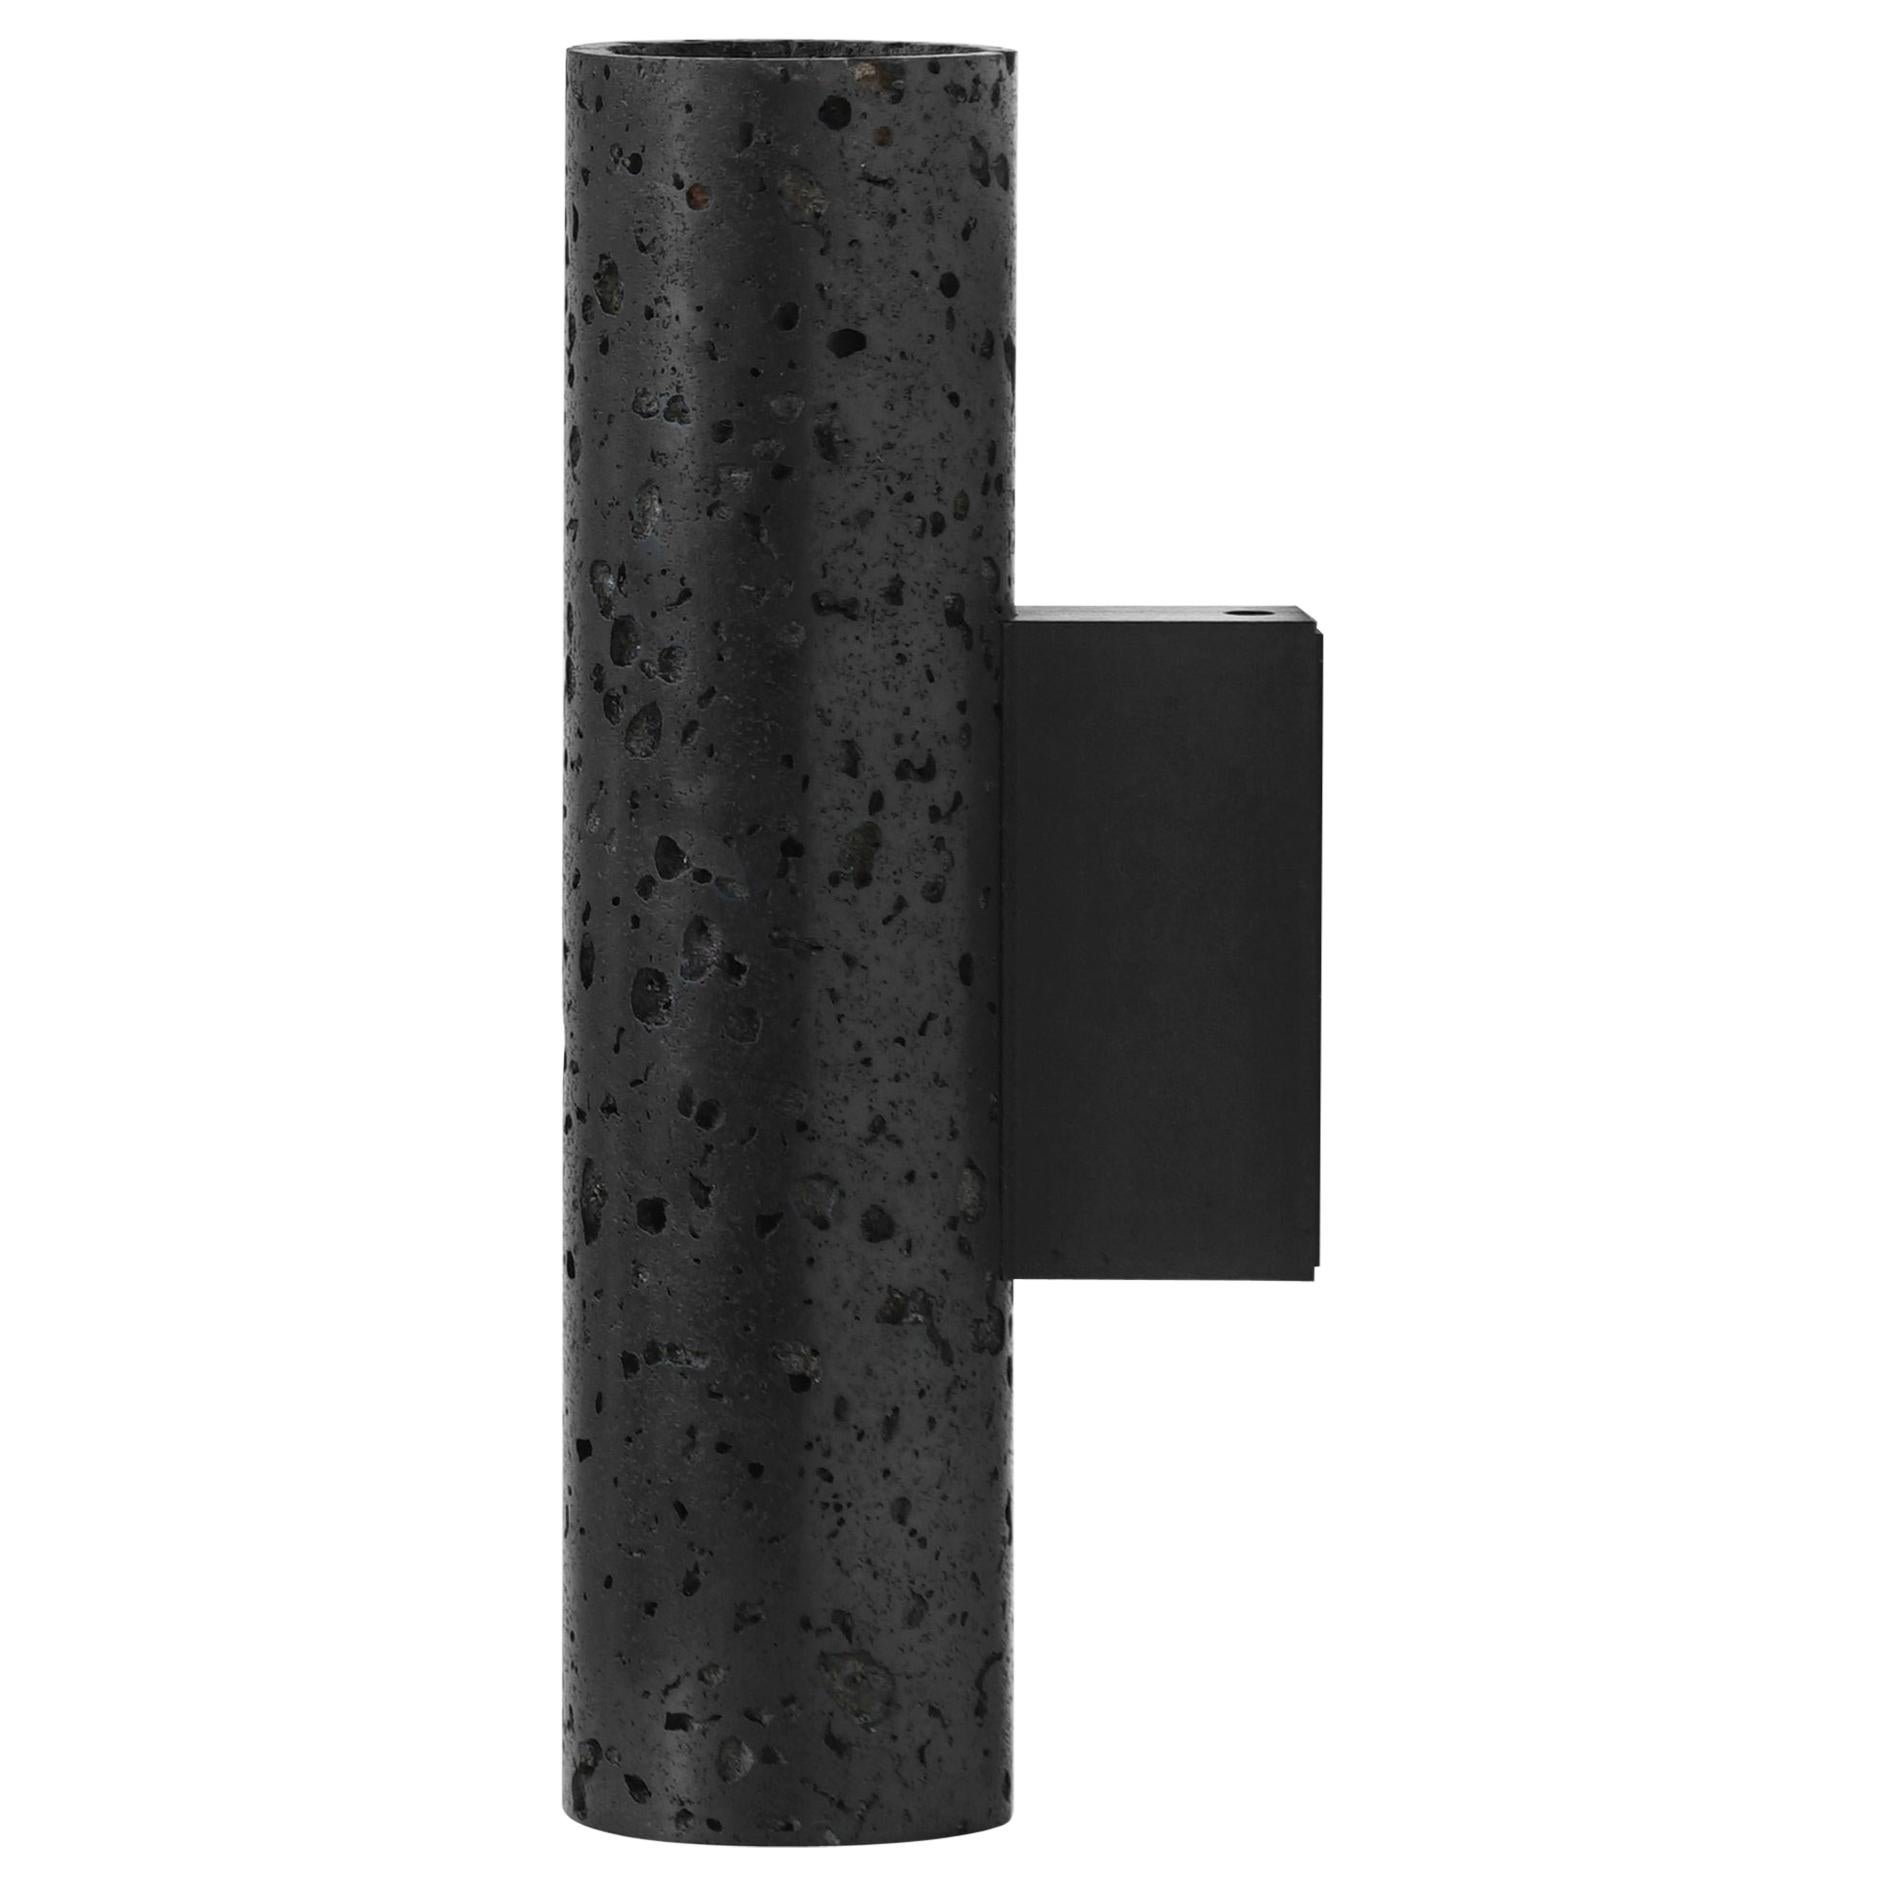 """Lava Stone and Aluminum Wall Lamp, """"W01,"""" by Buzao"""